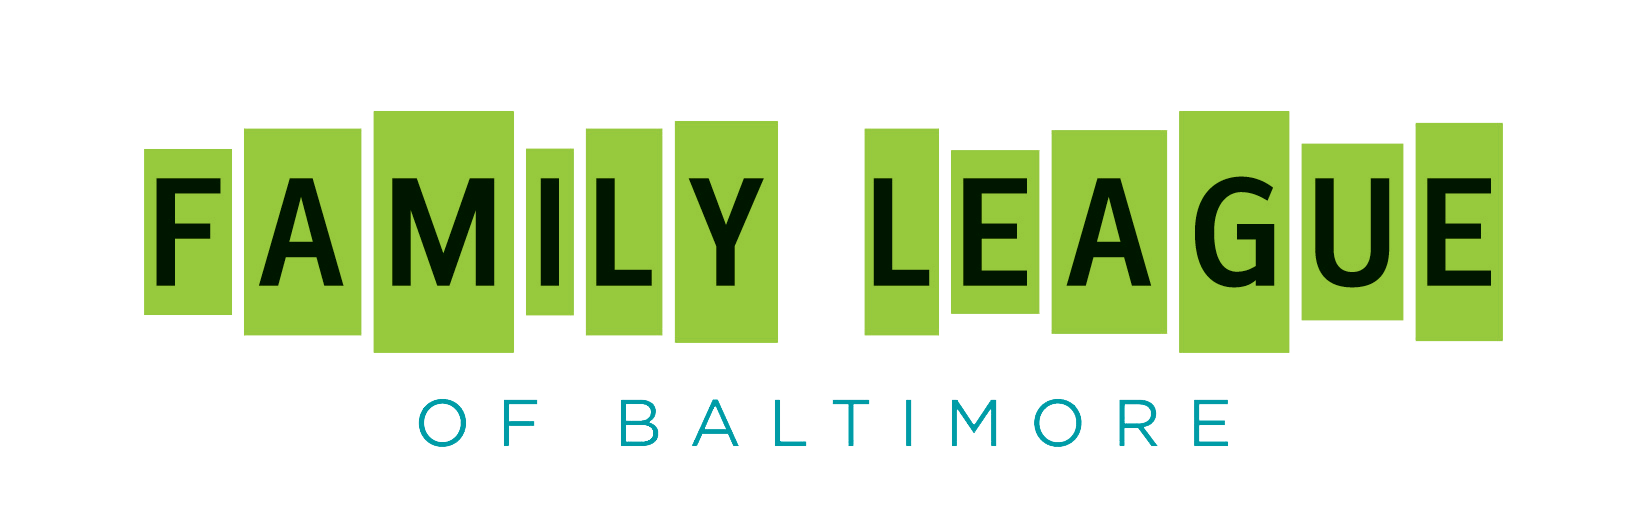 FamilyLeague_Logo_hi_quality_print.png